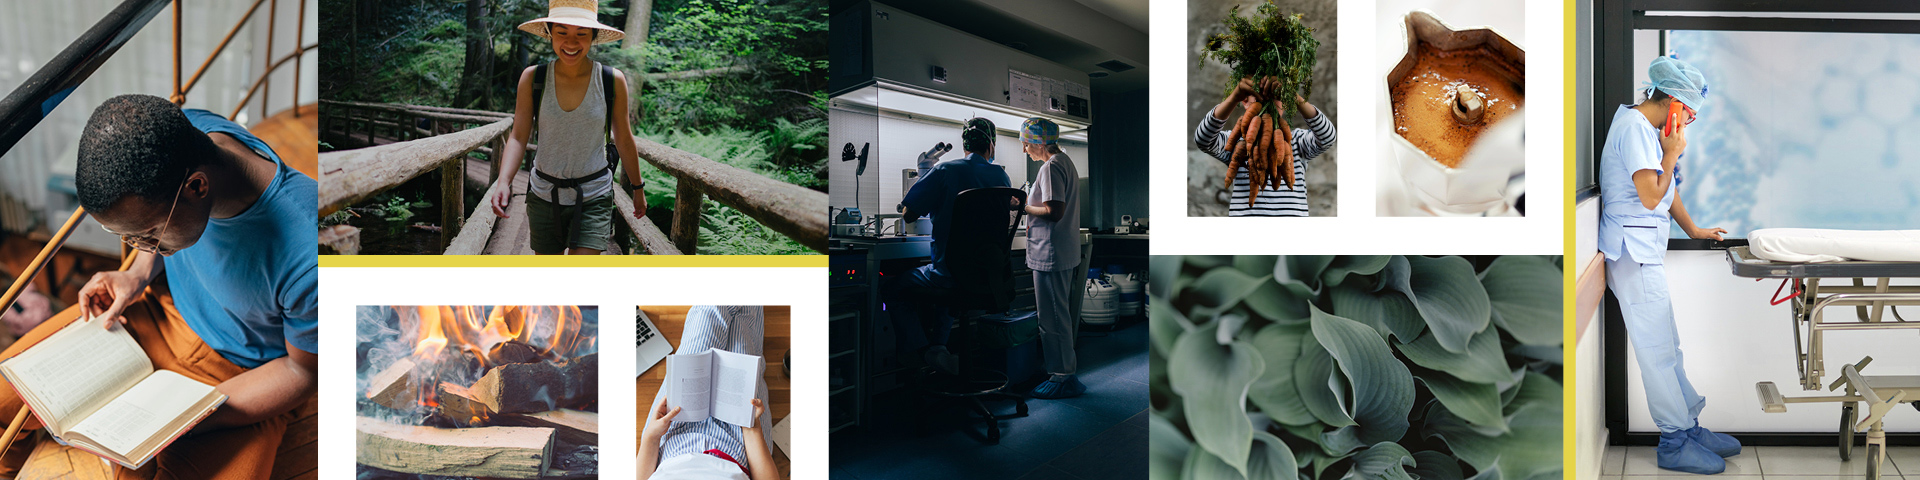 A collage of images containing people, outdoors, studying